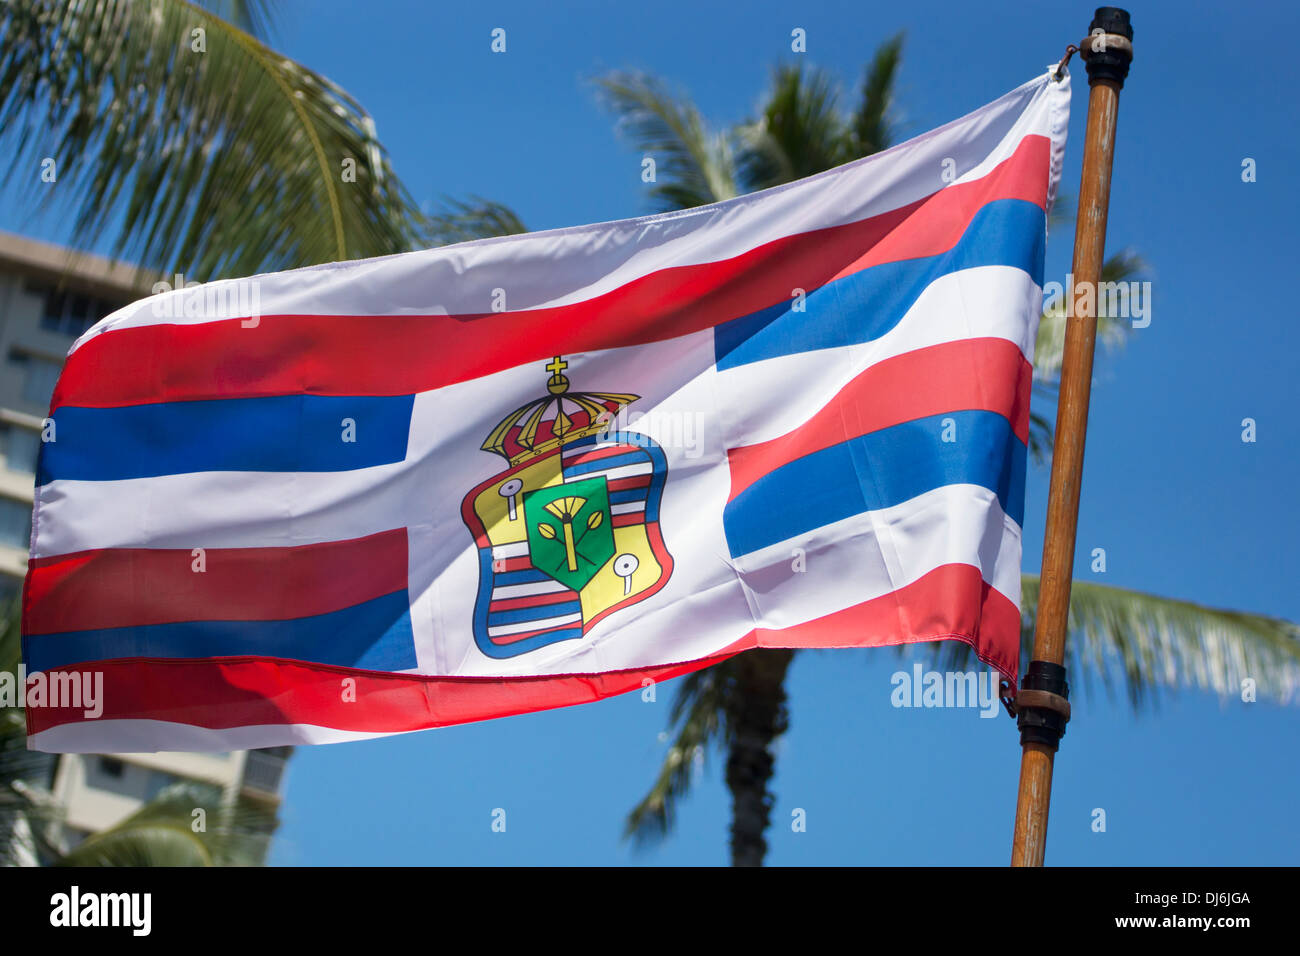 A Flag Flying With The Hawaiian Royal Seal; Oahu, Hawaii, United States Of America - Stock Image